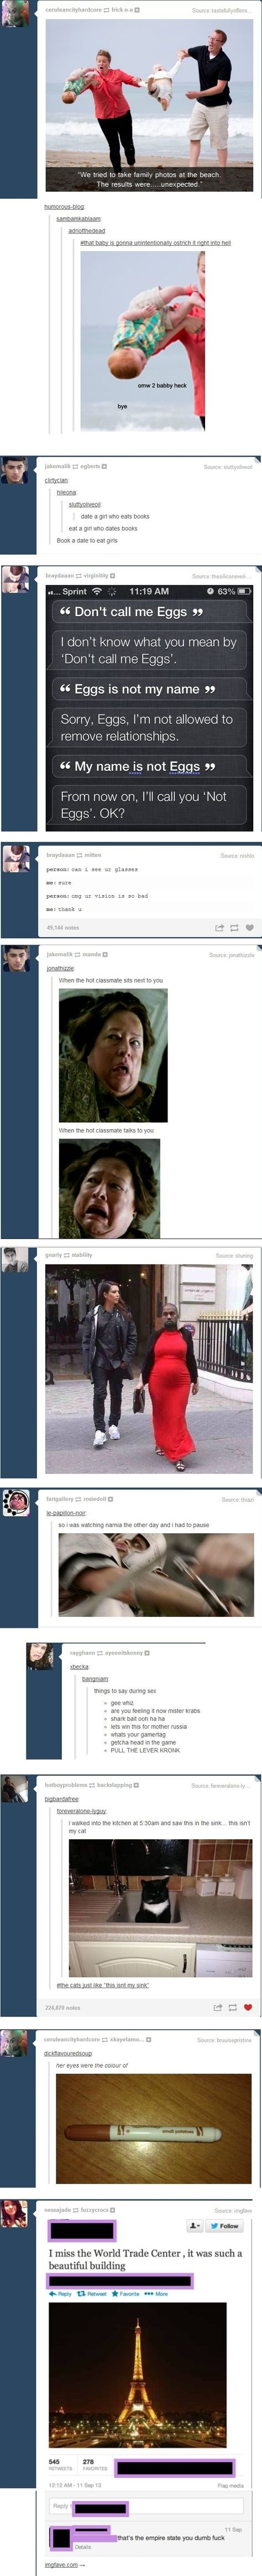 funny-picture-tumblr-comments-compilation